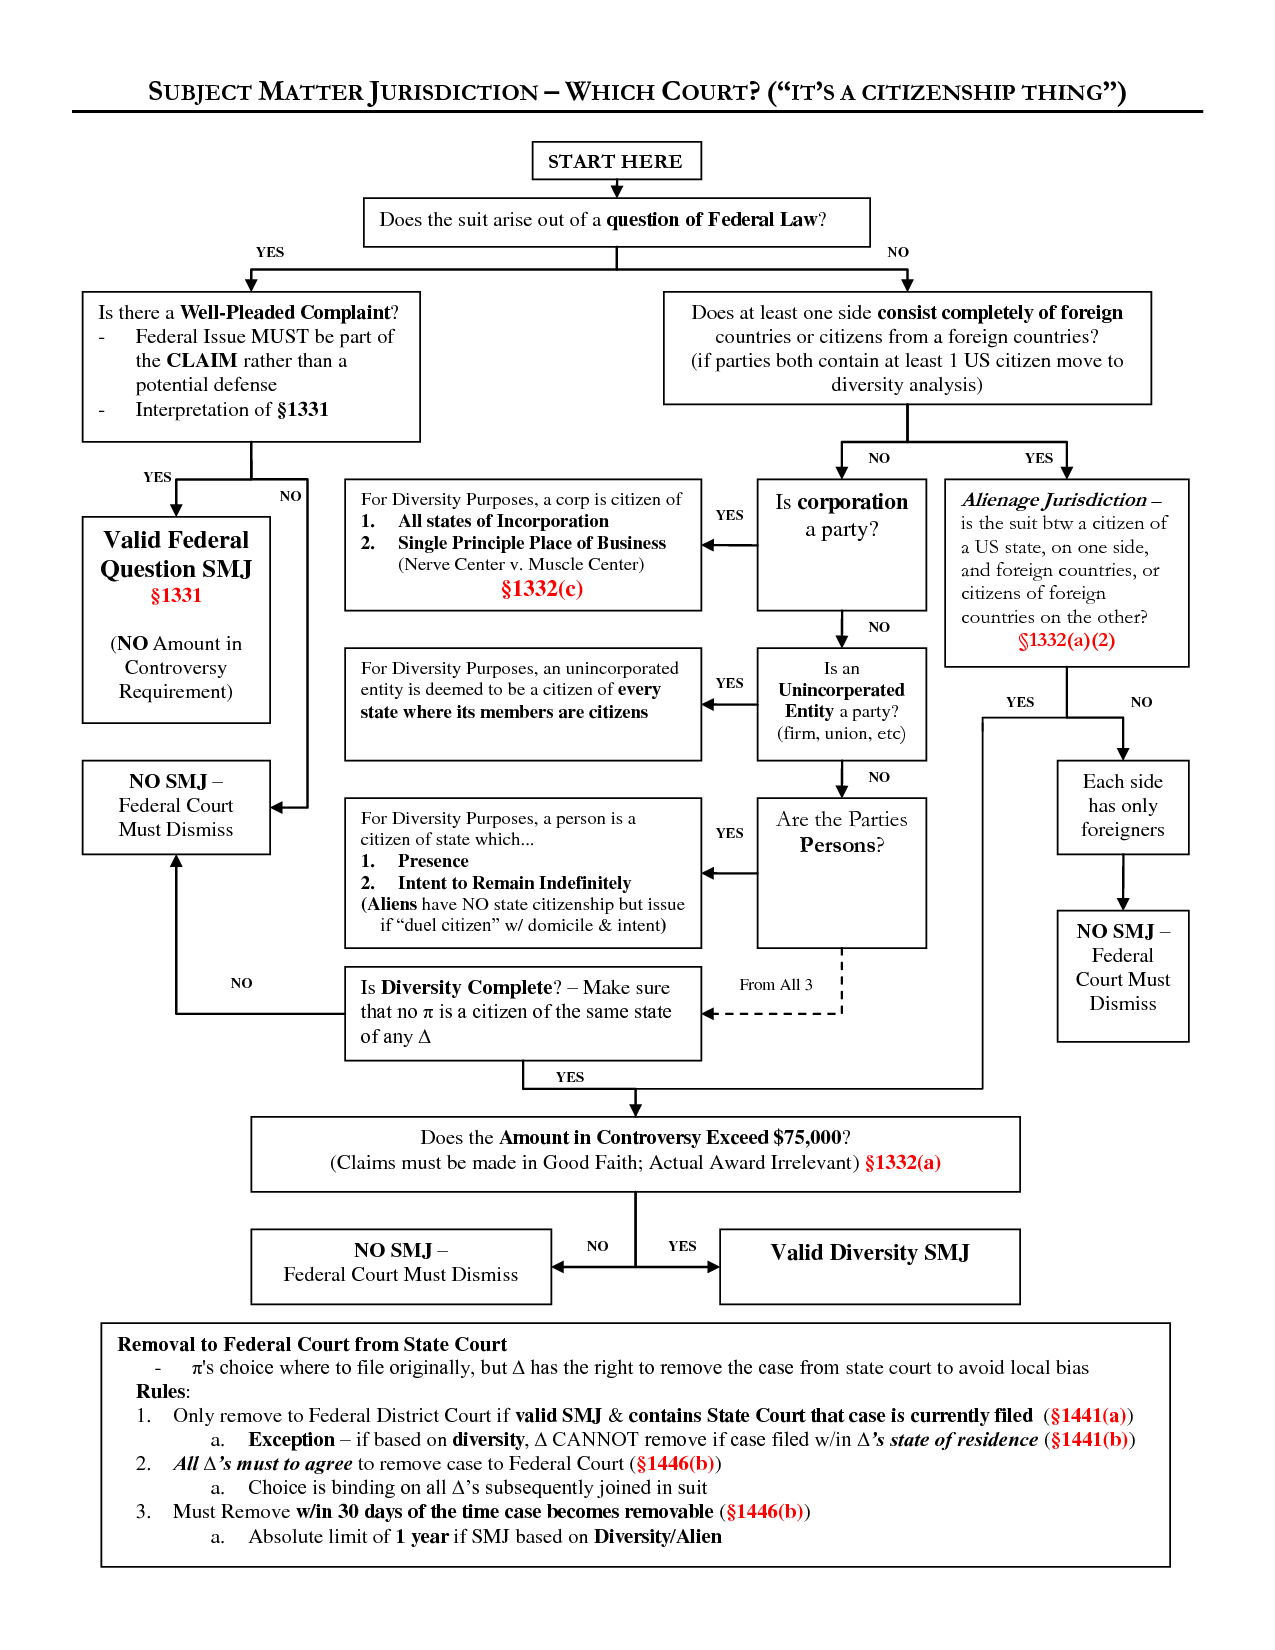 Subject matter jurisdiction flow chart flowcharts pinterest subject matter jurisdiction flow chart ccuart Choice Image